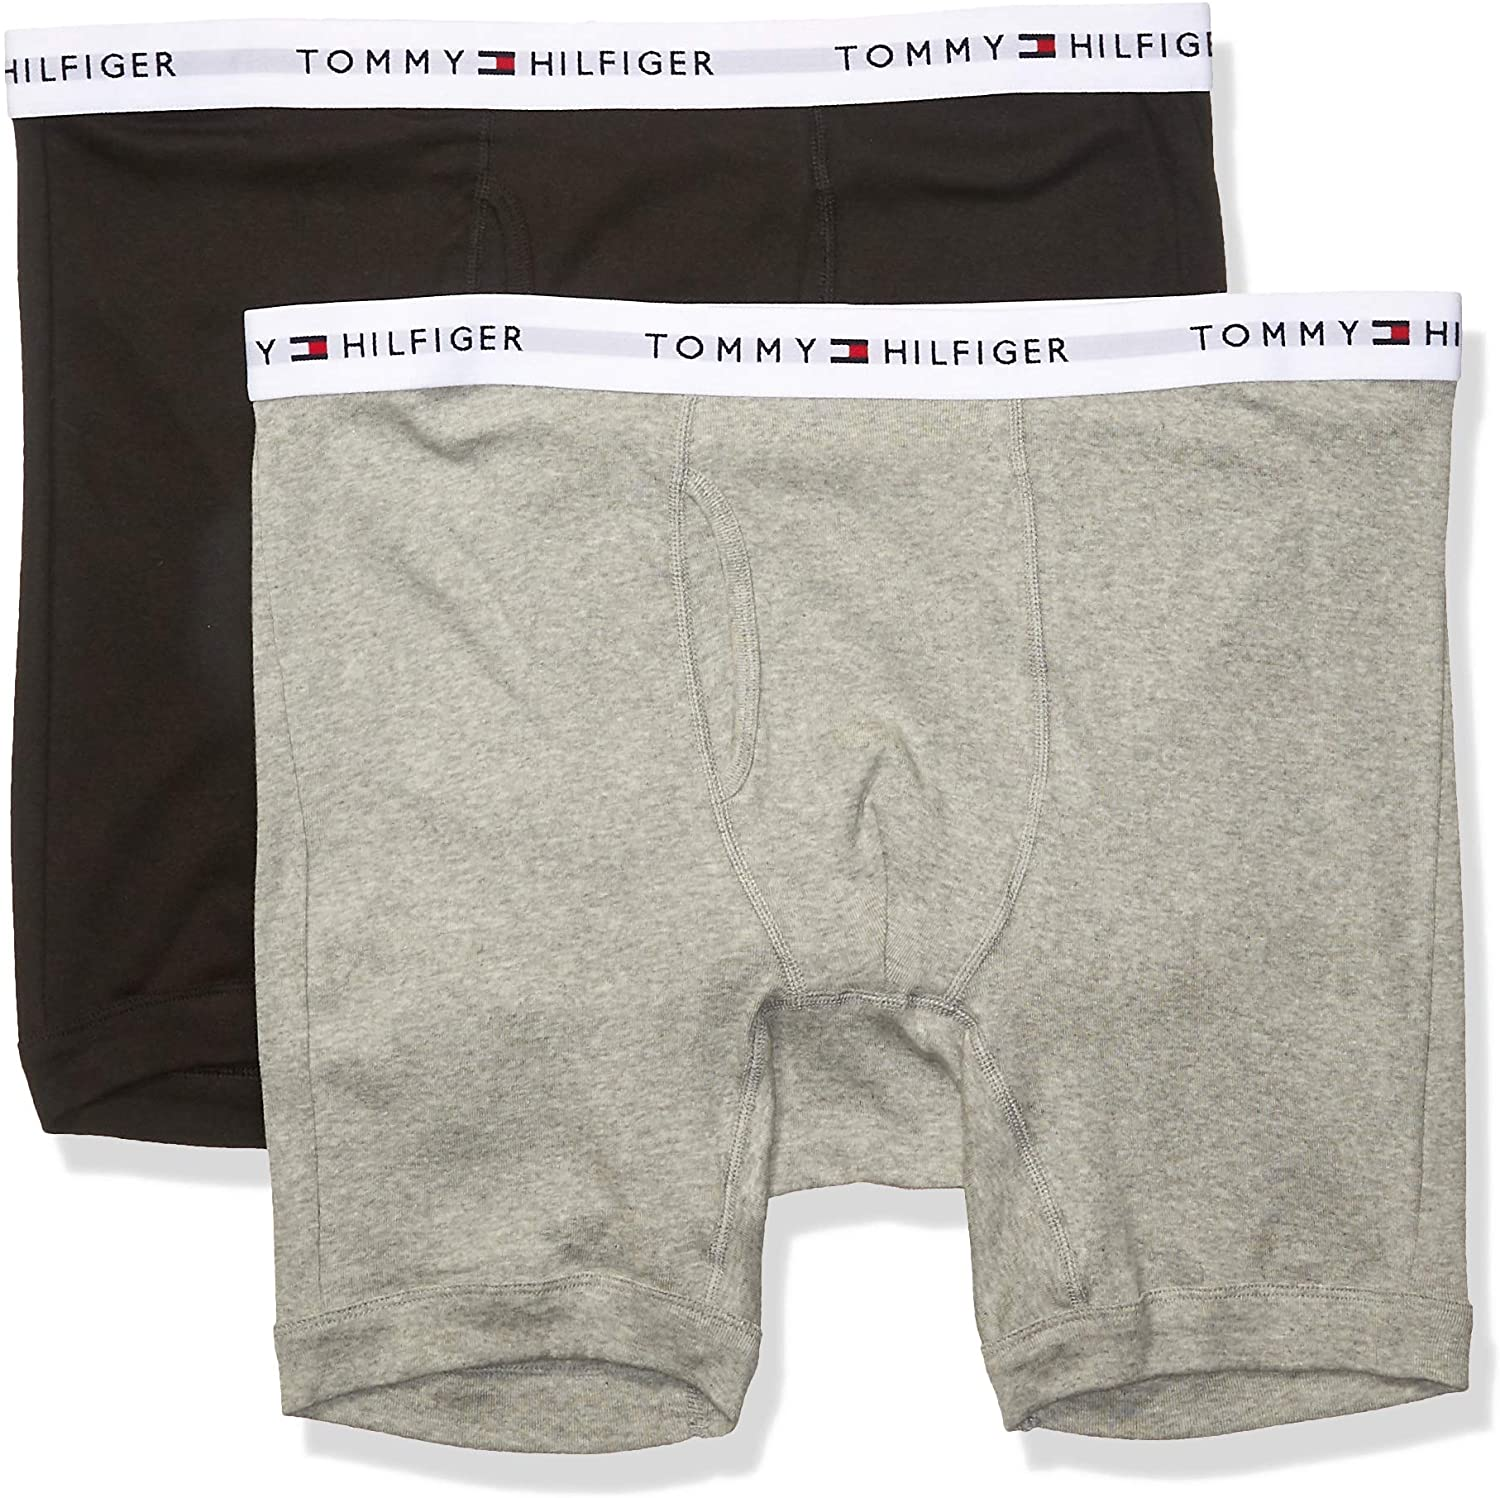 Tommy Hilfiger Men's Big and Tall Underwear Multipack Cotton Classics Boxer Briefs